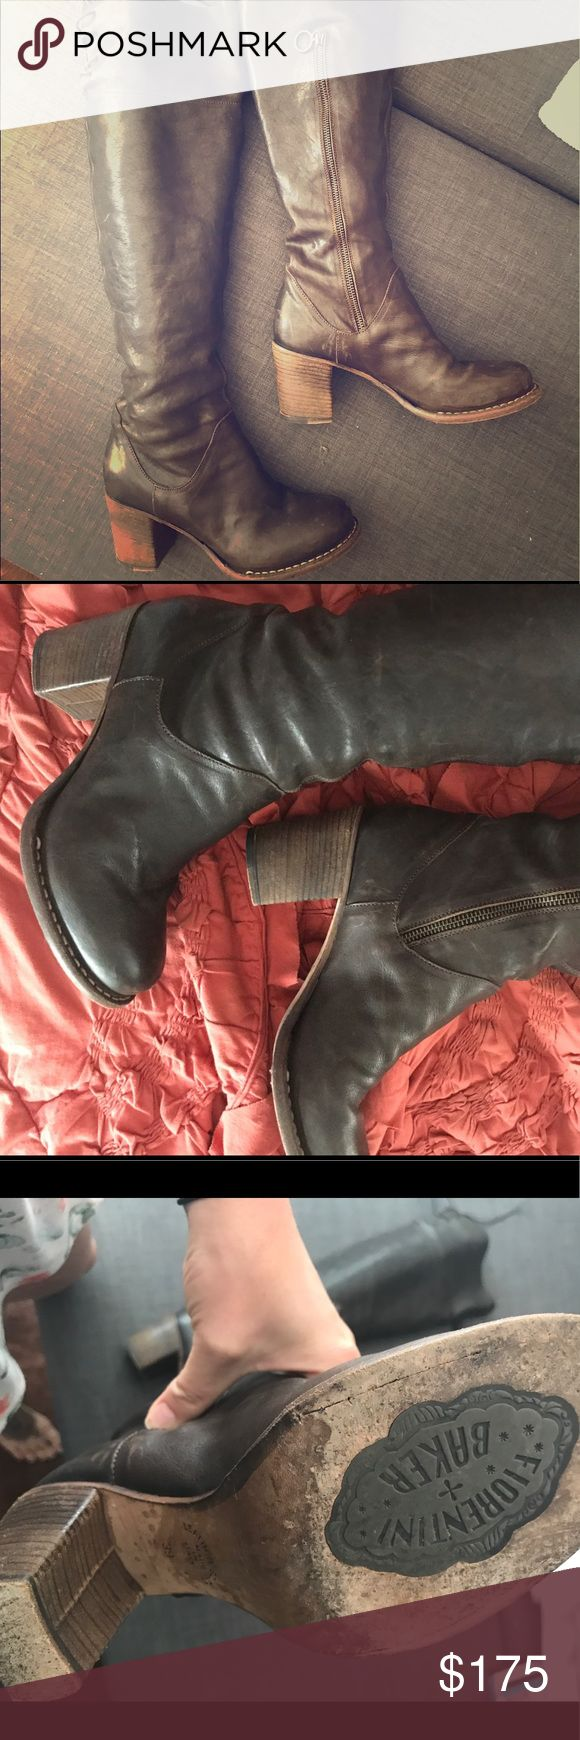 Fiorentini + Baker brown leather knee high boots Beautiful chocolate brown leather boots with lace up details on the back of the knees. Can also roll the tops down for a different look. Some light scuffs here and there but nothing to noticeable. Fiorentini + Baker Shoes Heeled Boots